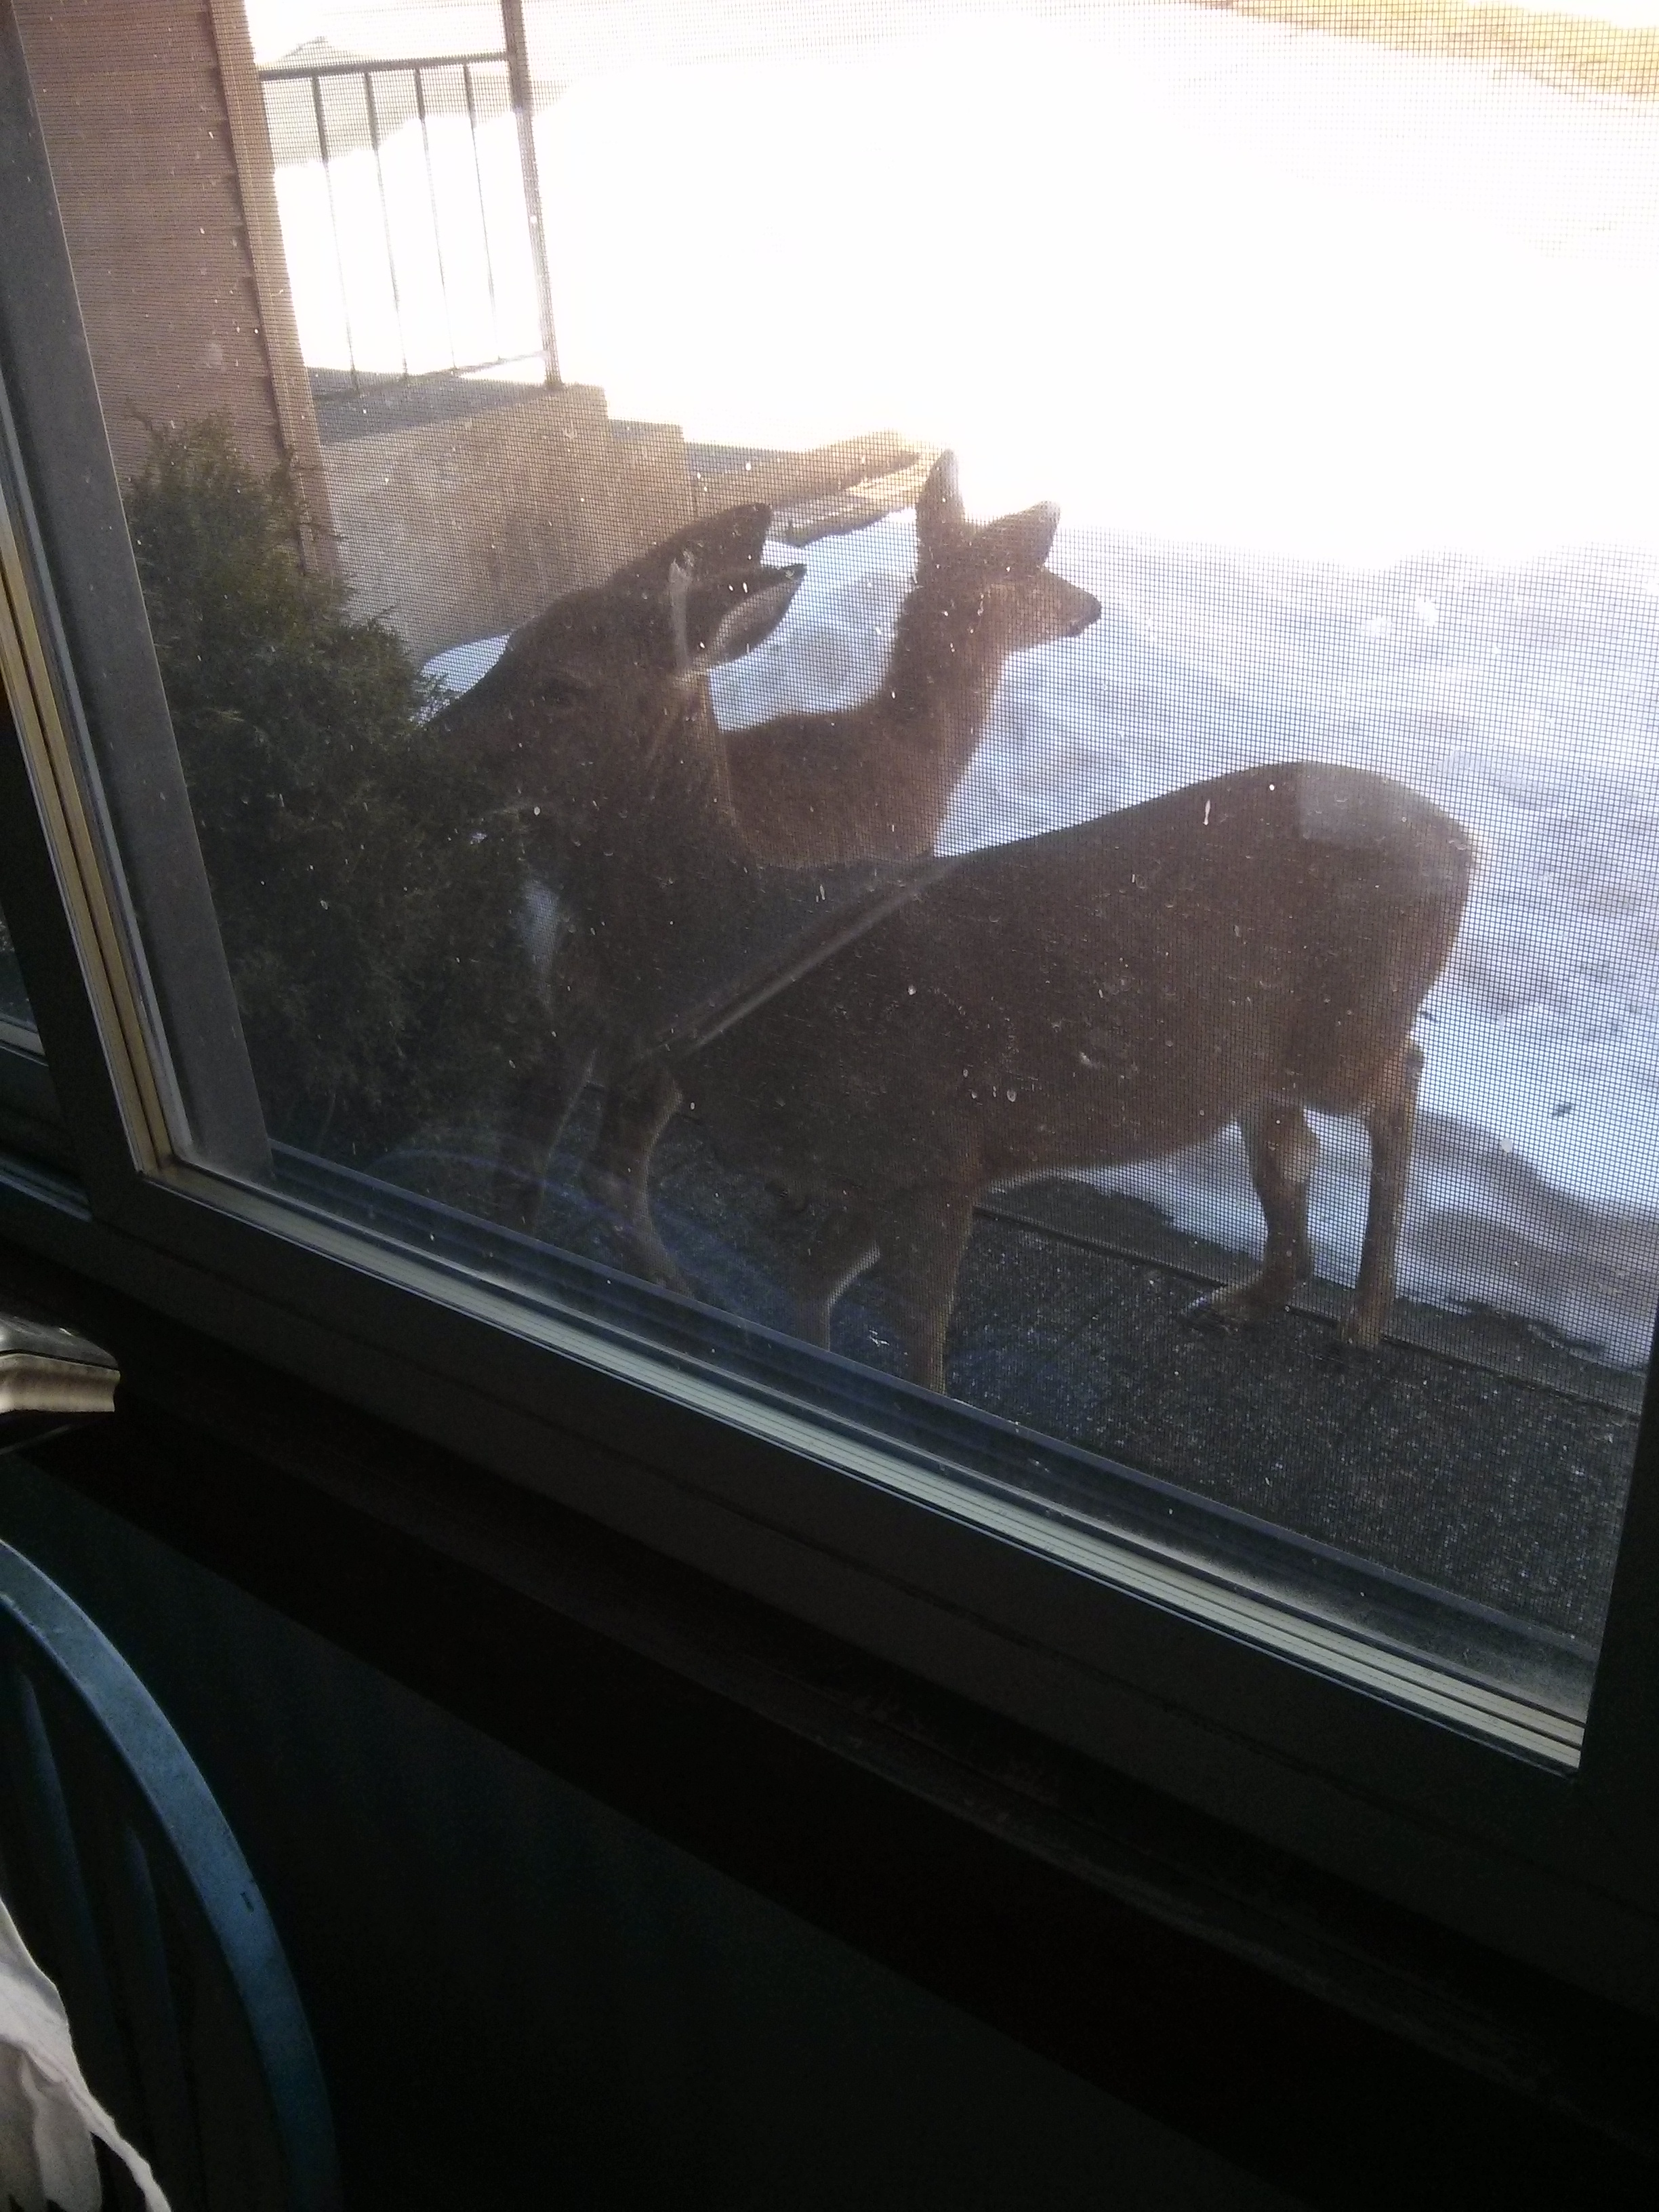 group of deer outside the window